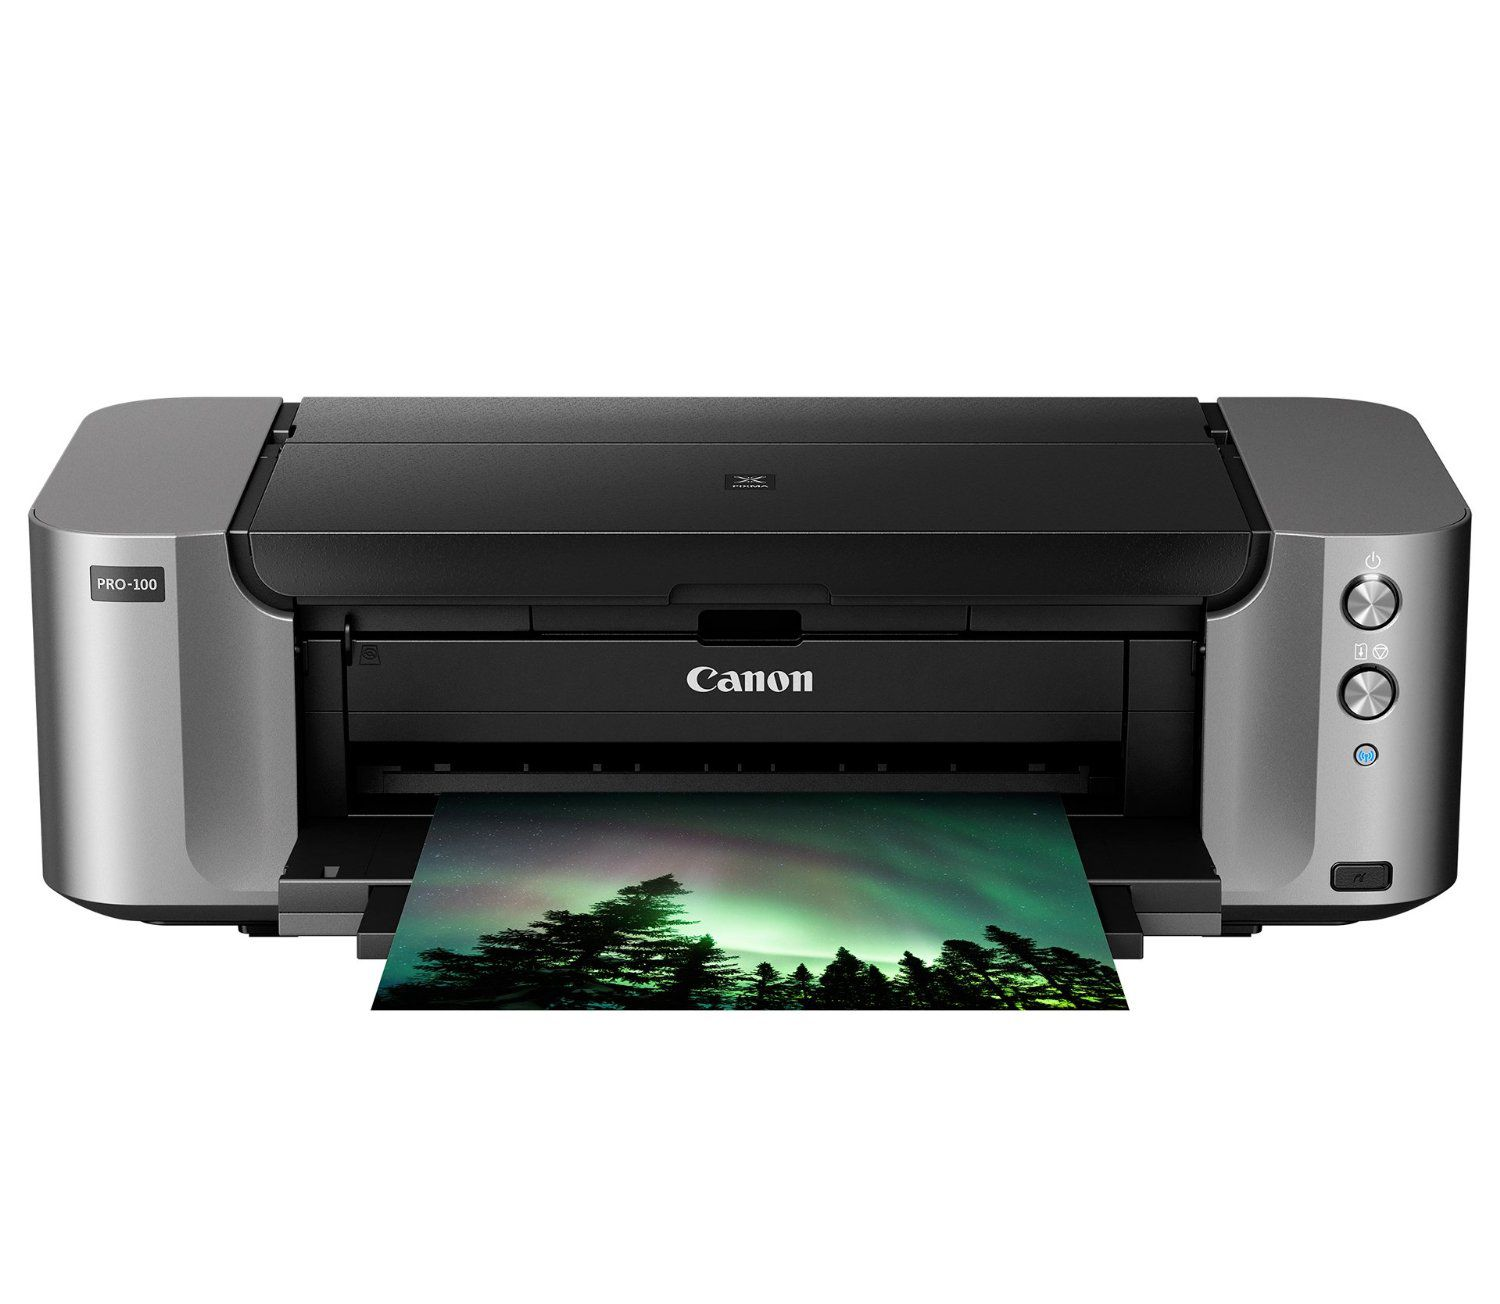 The 10 Best Photo Printers To Buy In 2018 Ink Free Mobile Printer Technology